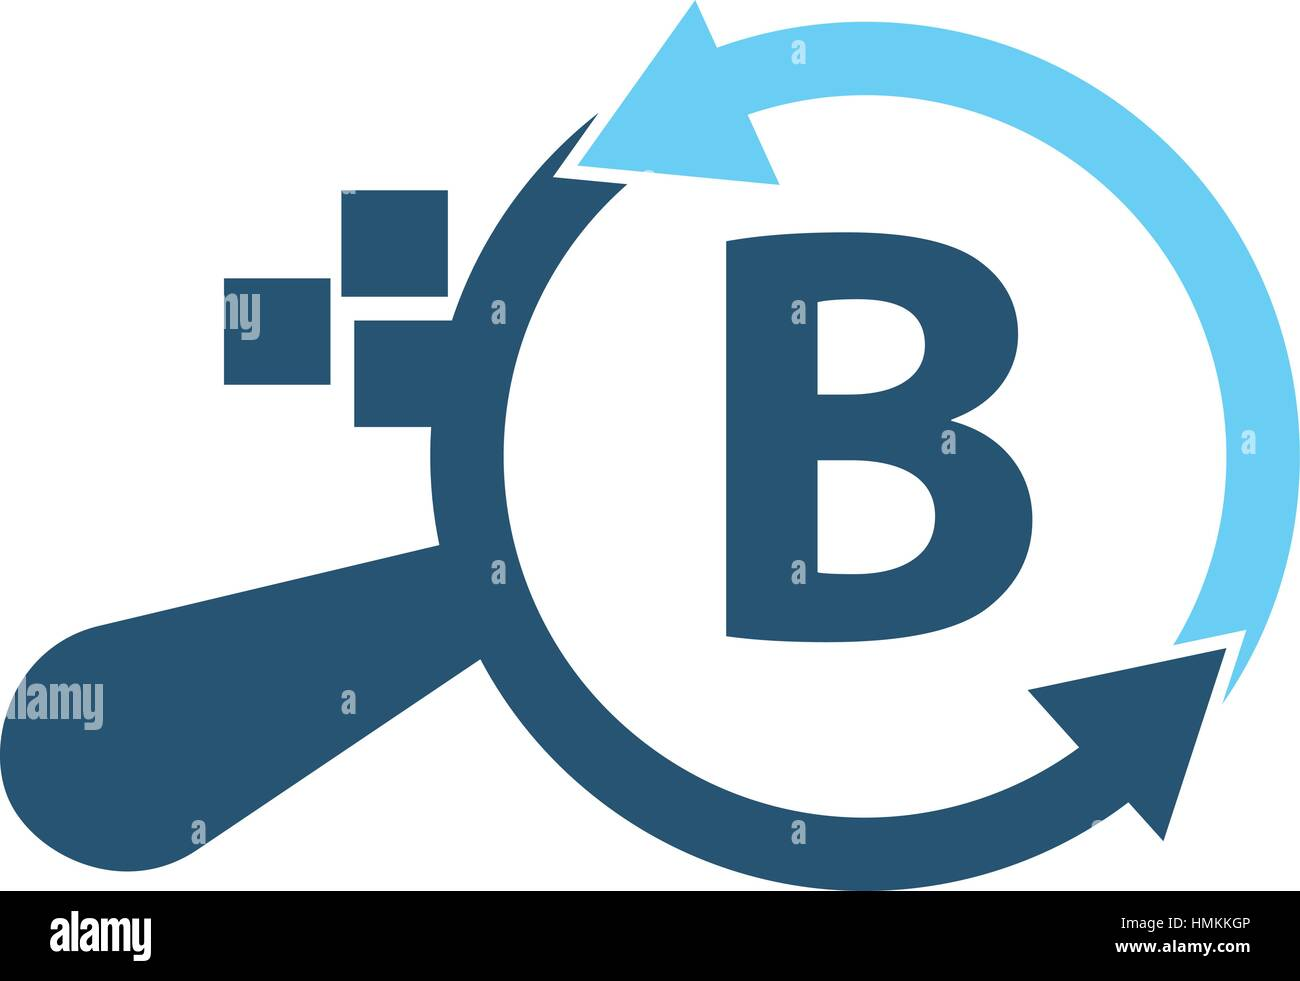 B Stock Solutions solutions apps searching initial b stock vector art